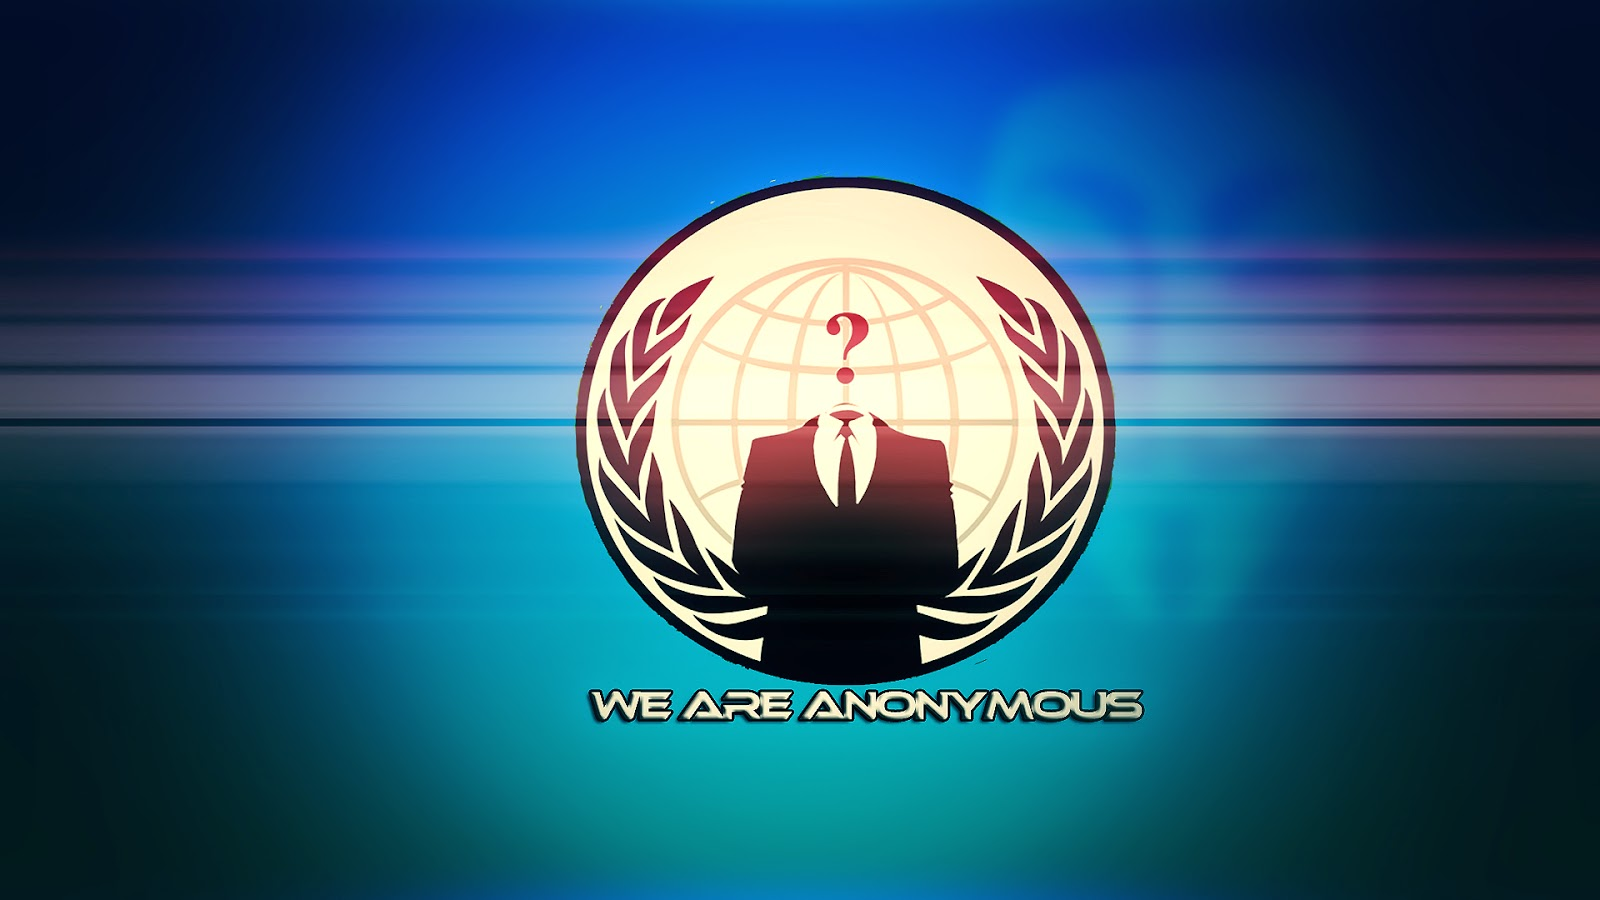 anonymous hd wallpaper free download